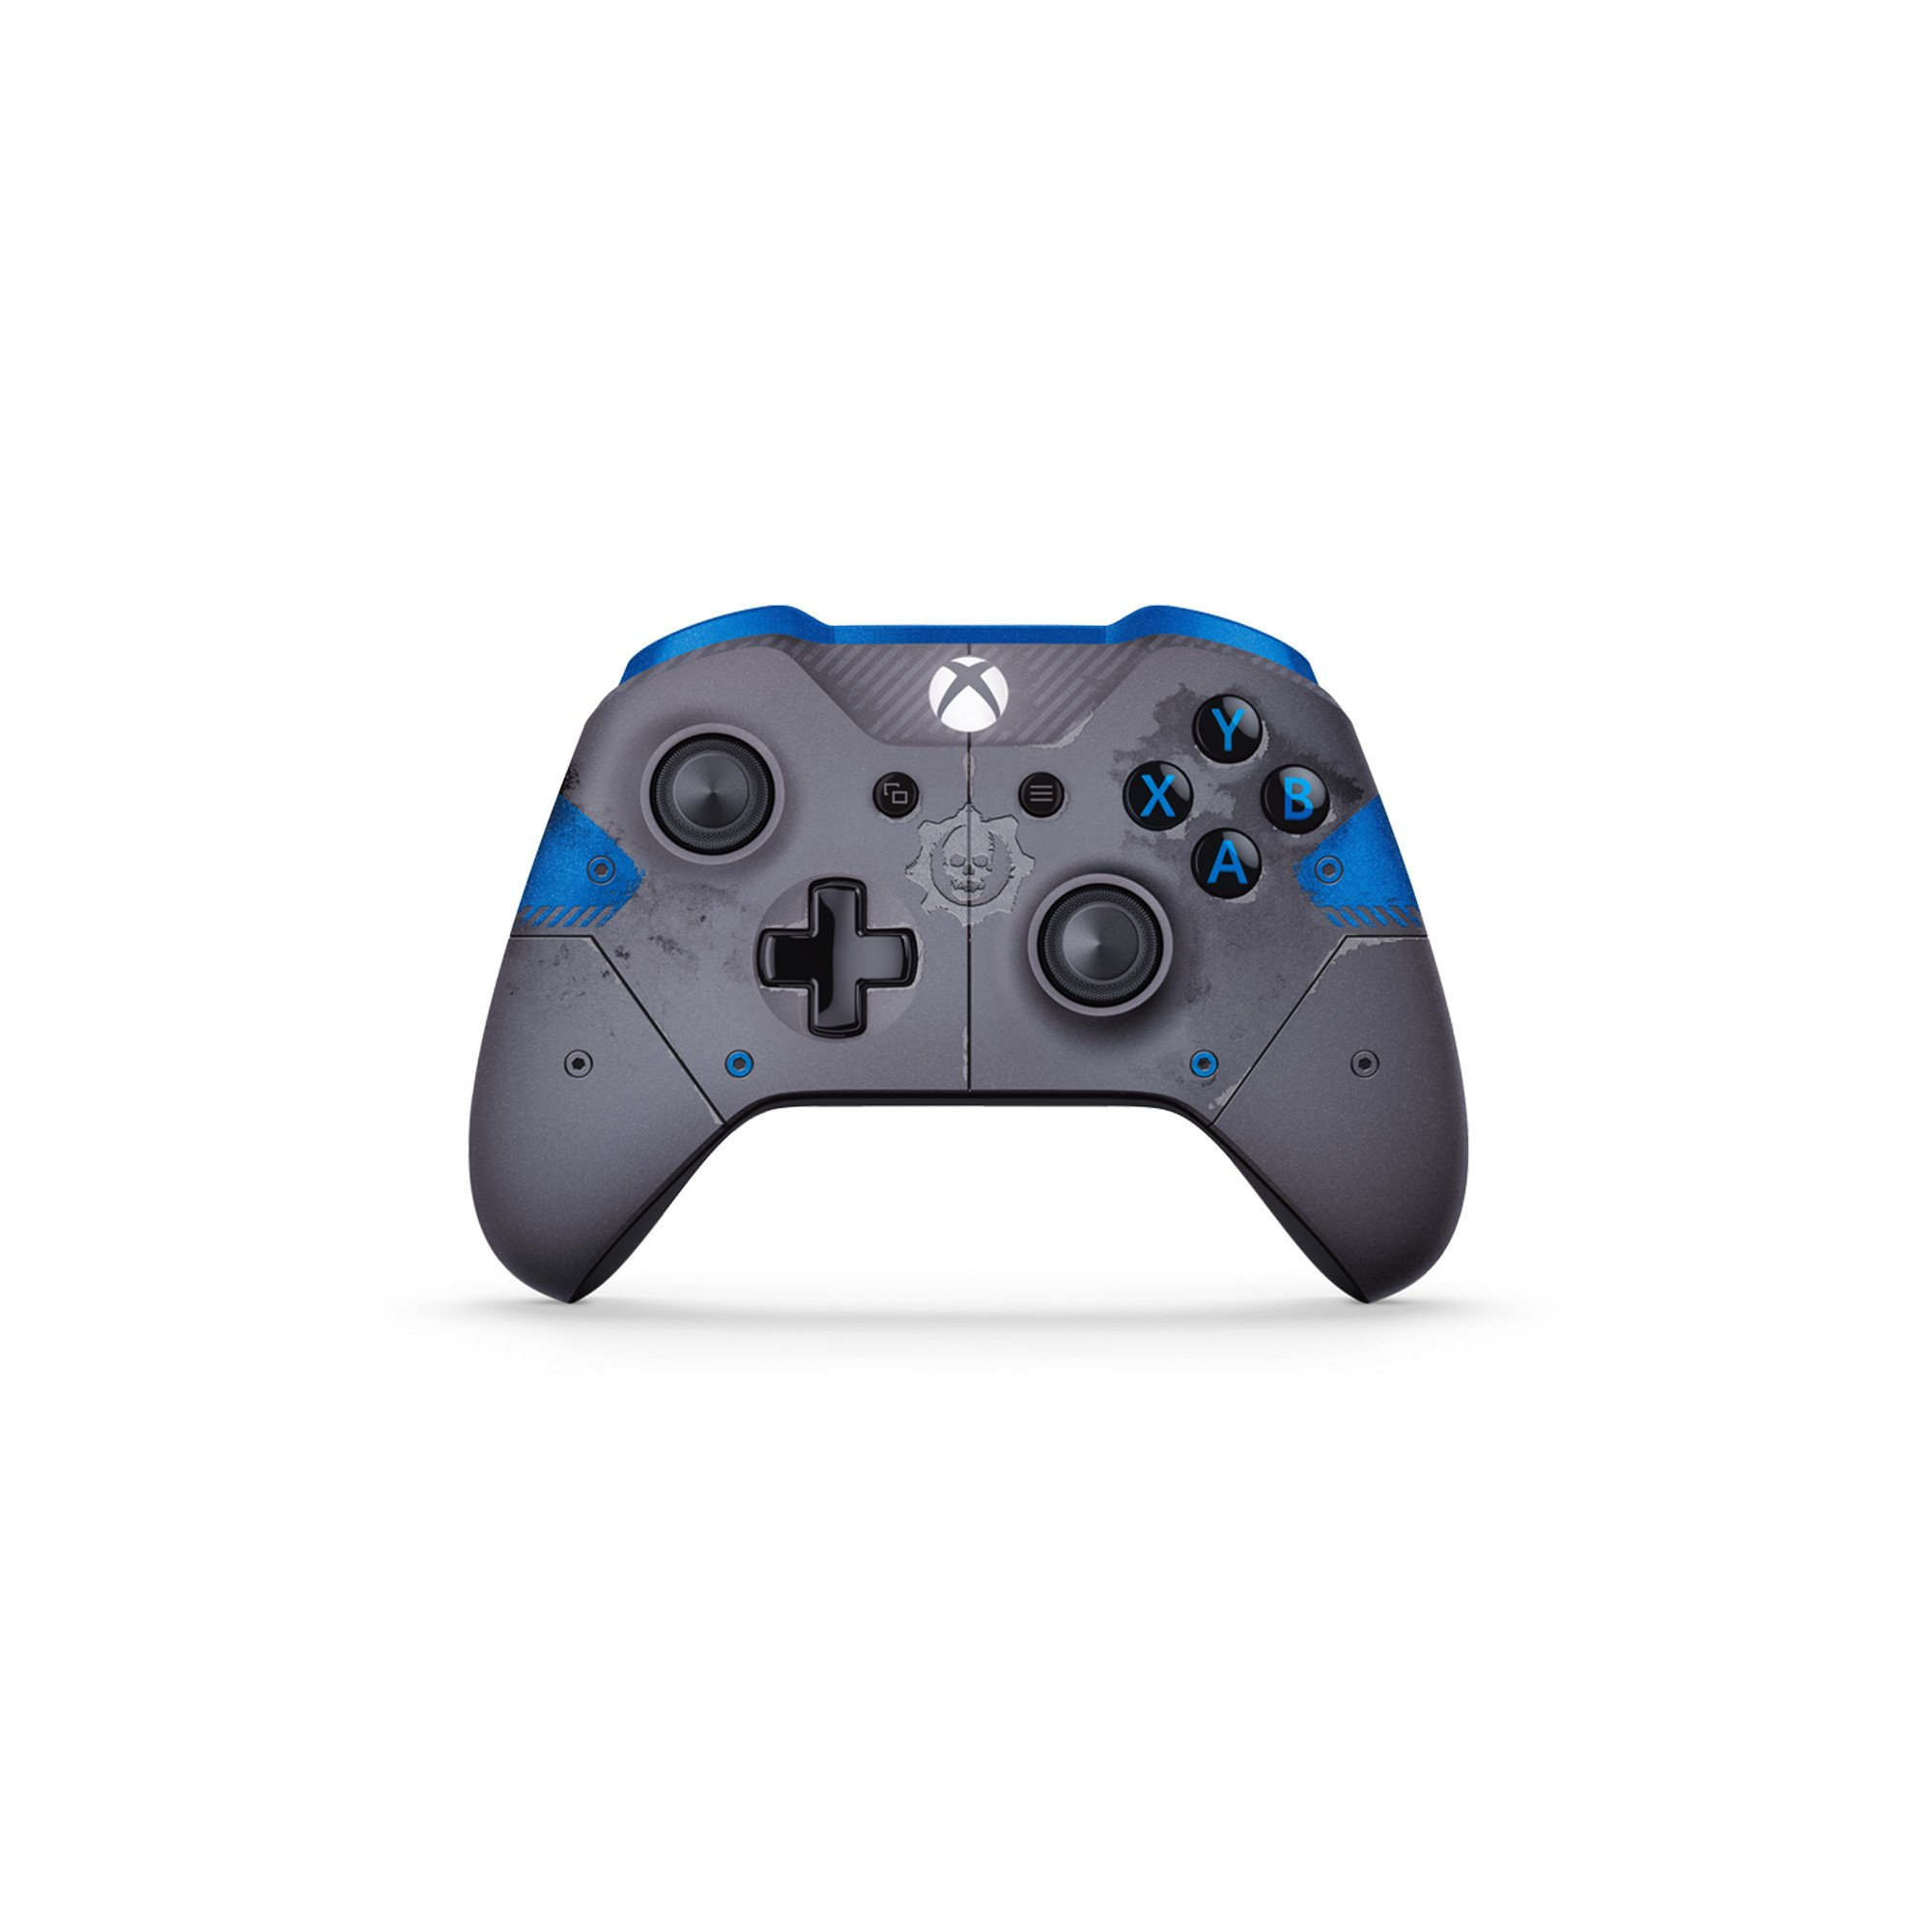 Xbox One Wireless Controller - Controller - Gears of War 4 JD Fenix product image